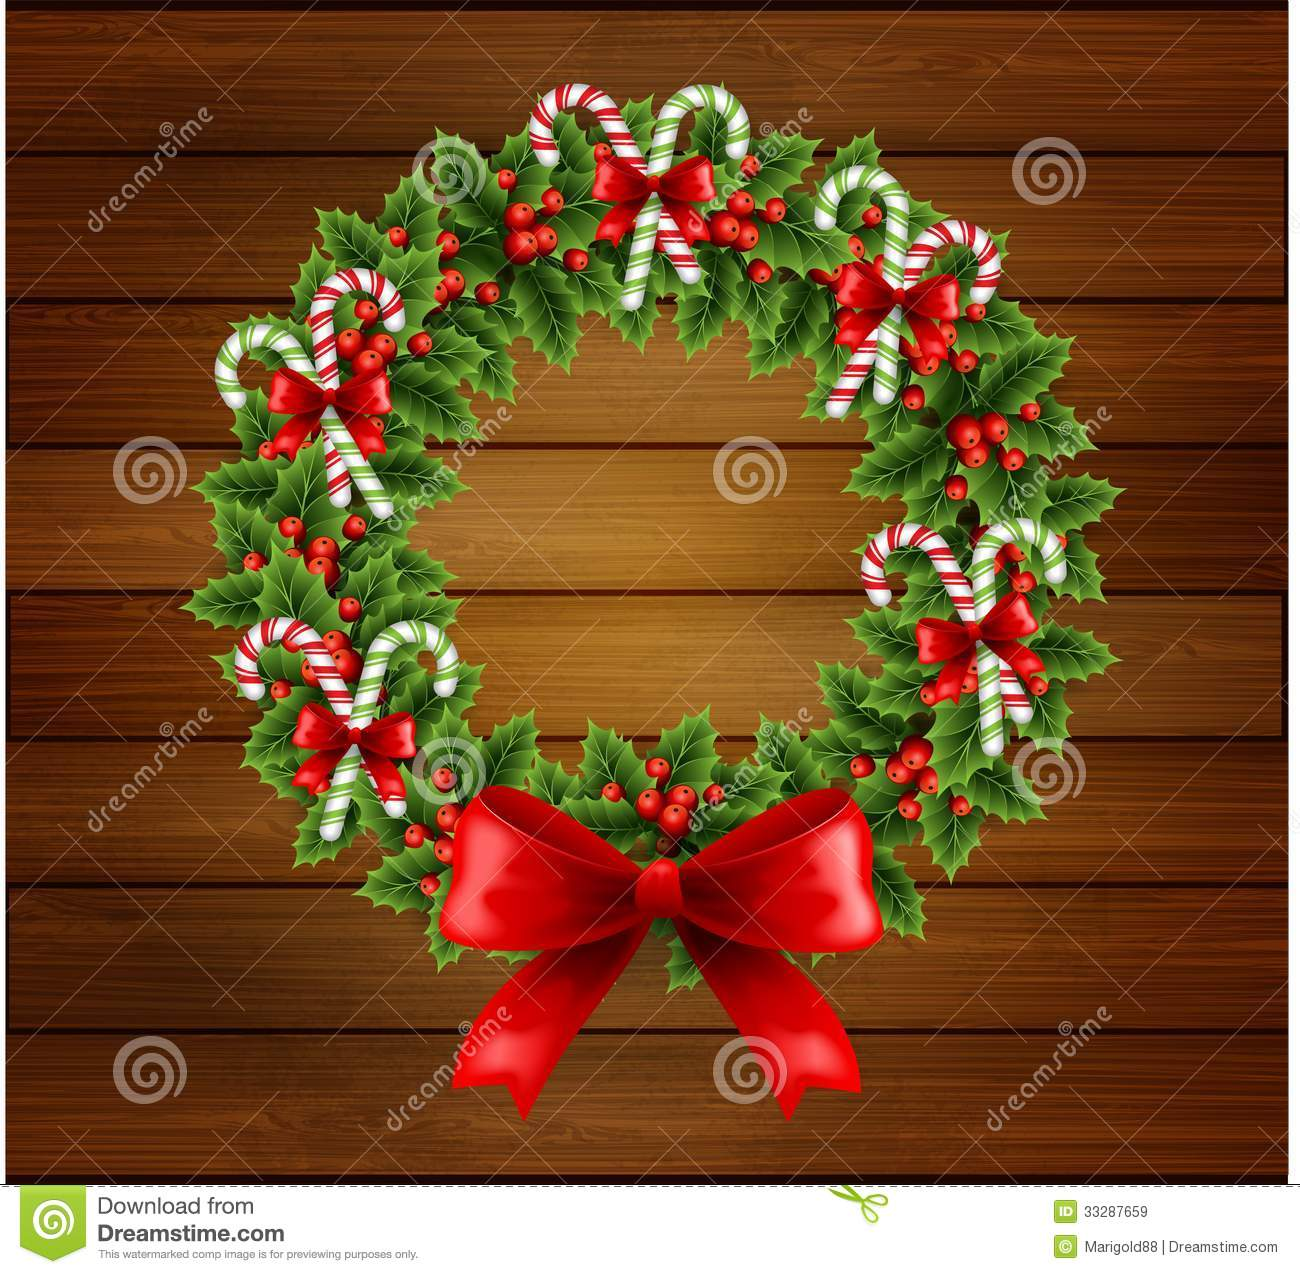 Christmas Holly Wreath In Wood Background Royalty Free